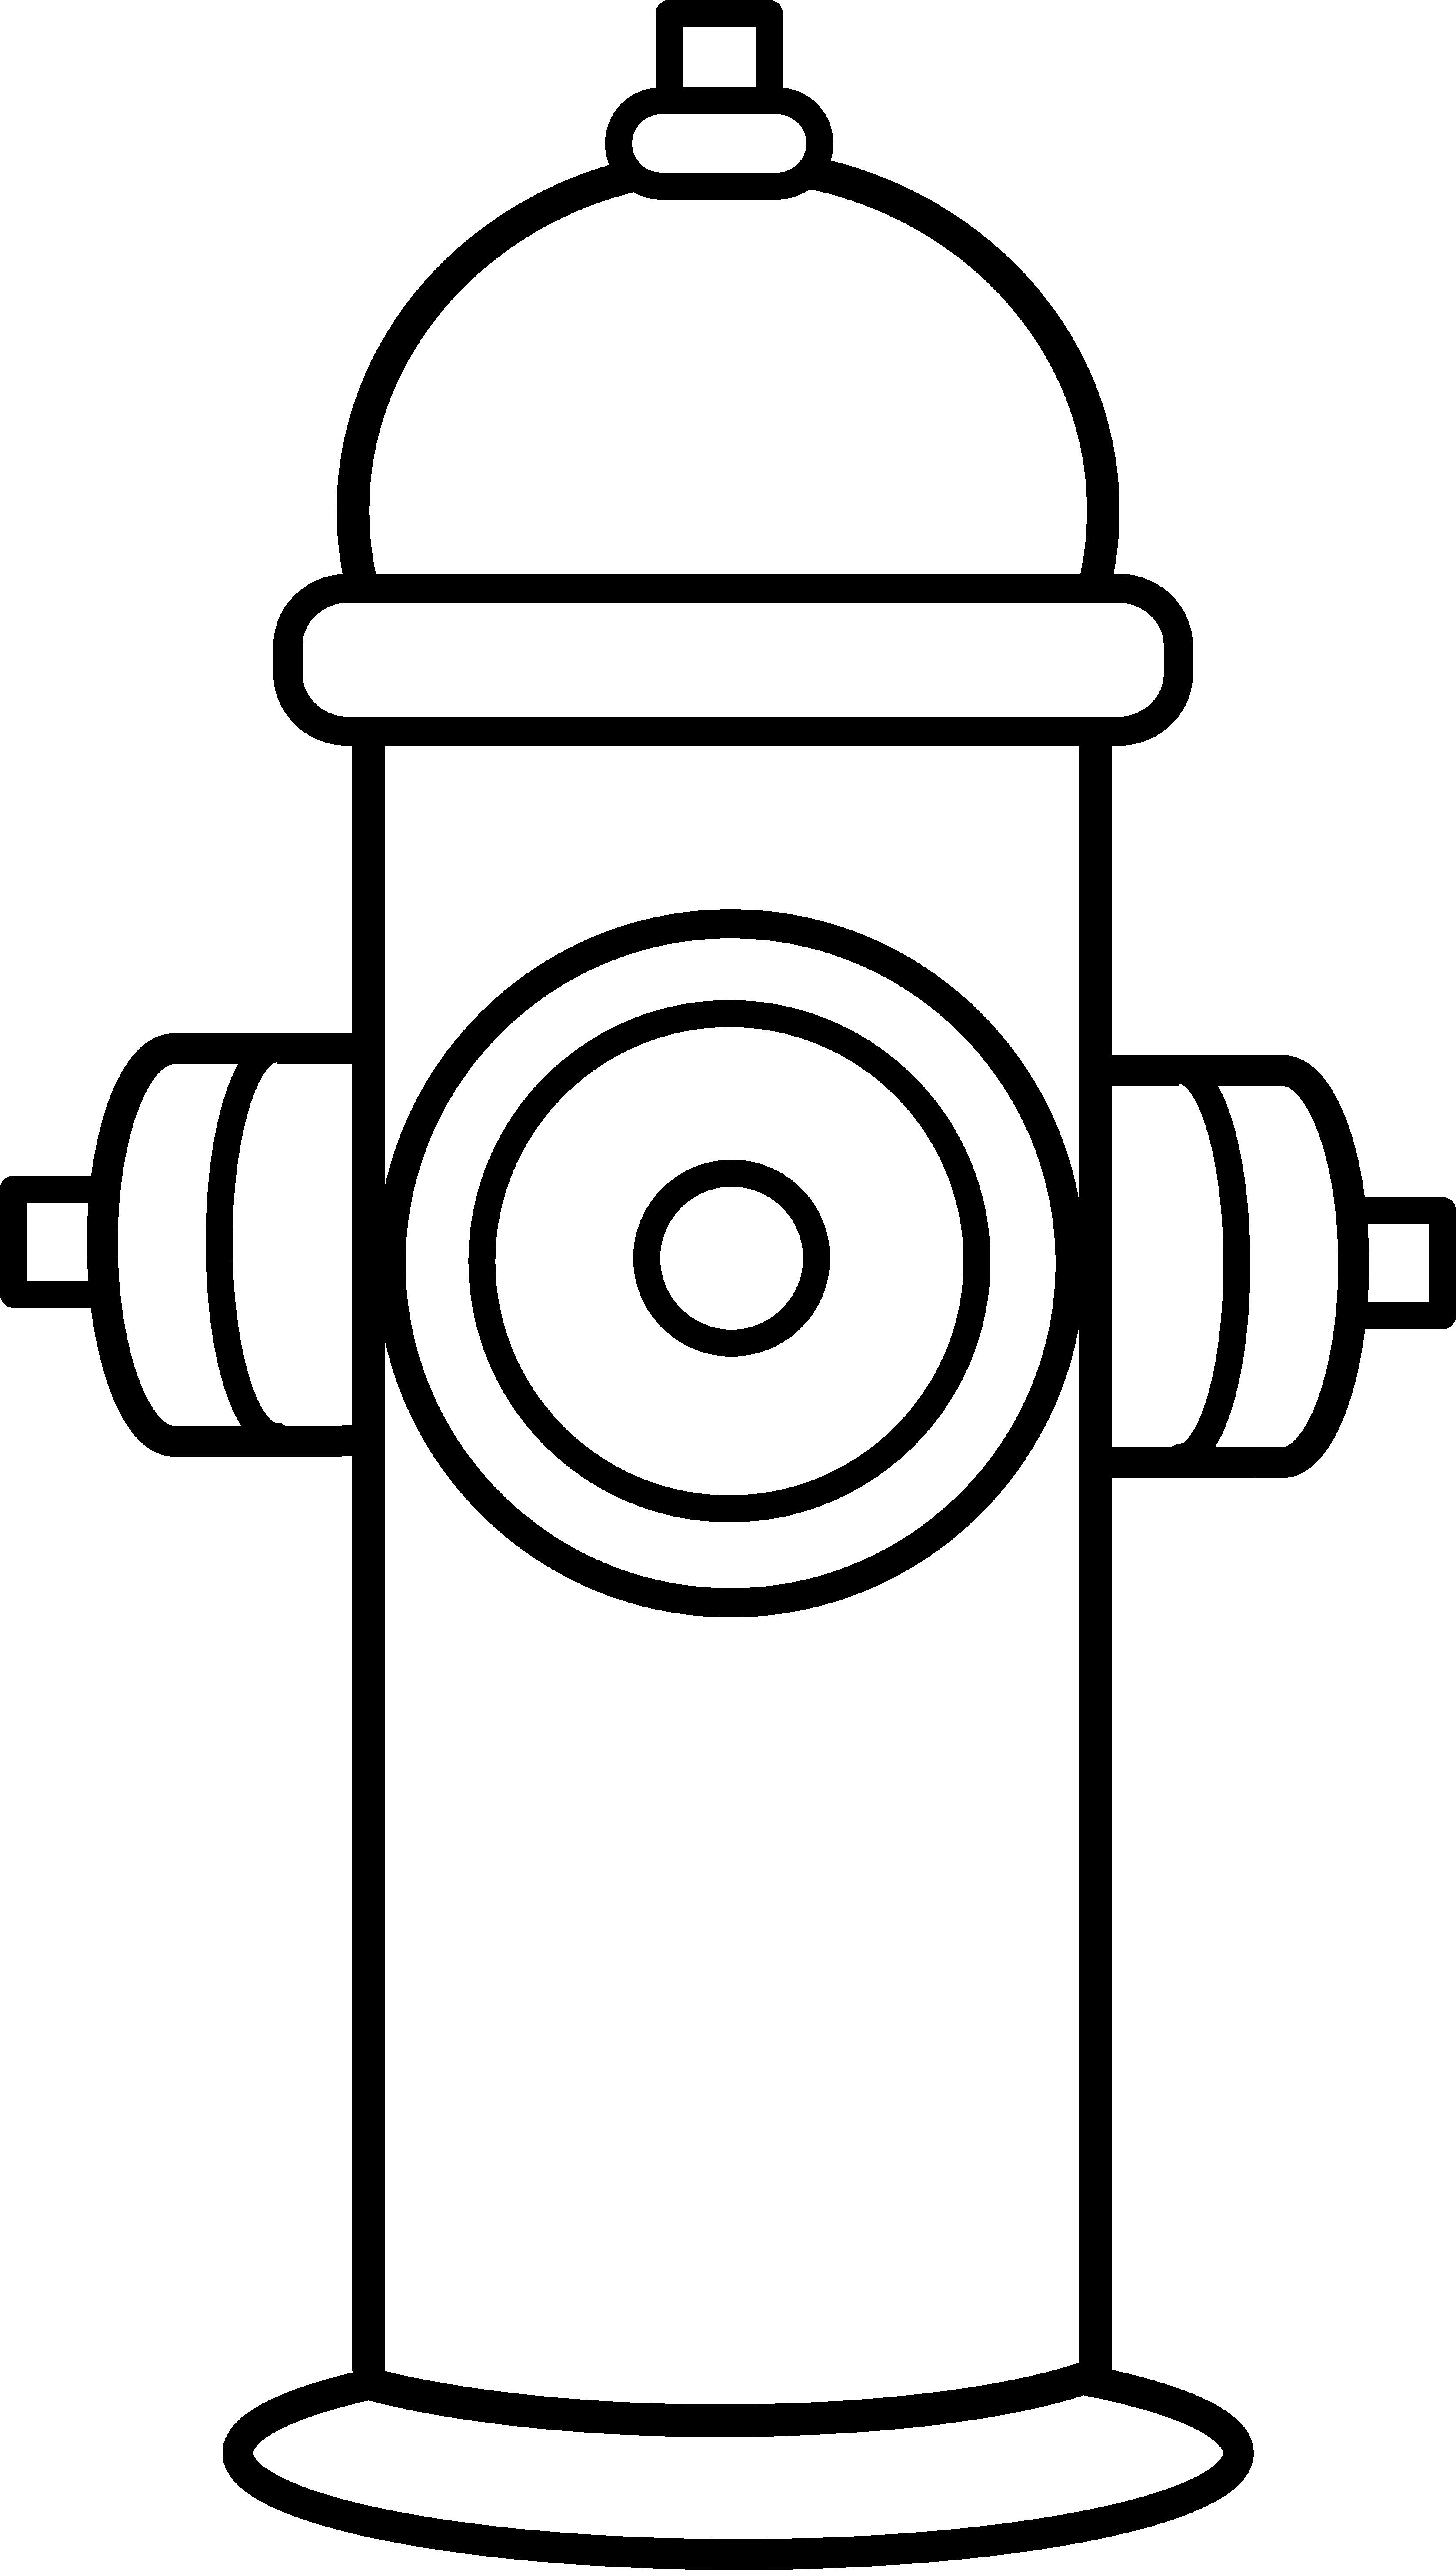 Fire Hydrant Printable Fire Hydrant Coloring Page Free Clip Art Coloring Pages Fire Hydrant Colors Family Tree Template Word